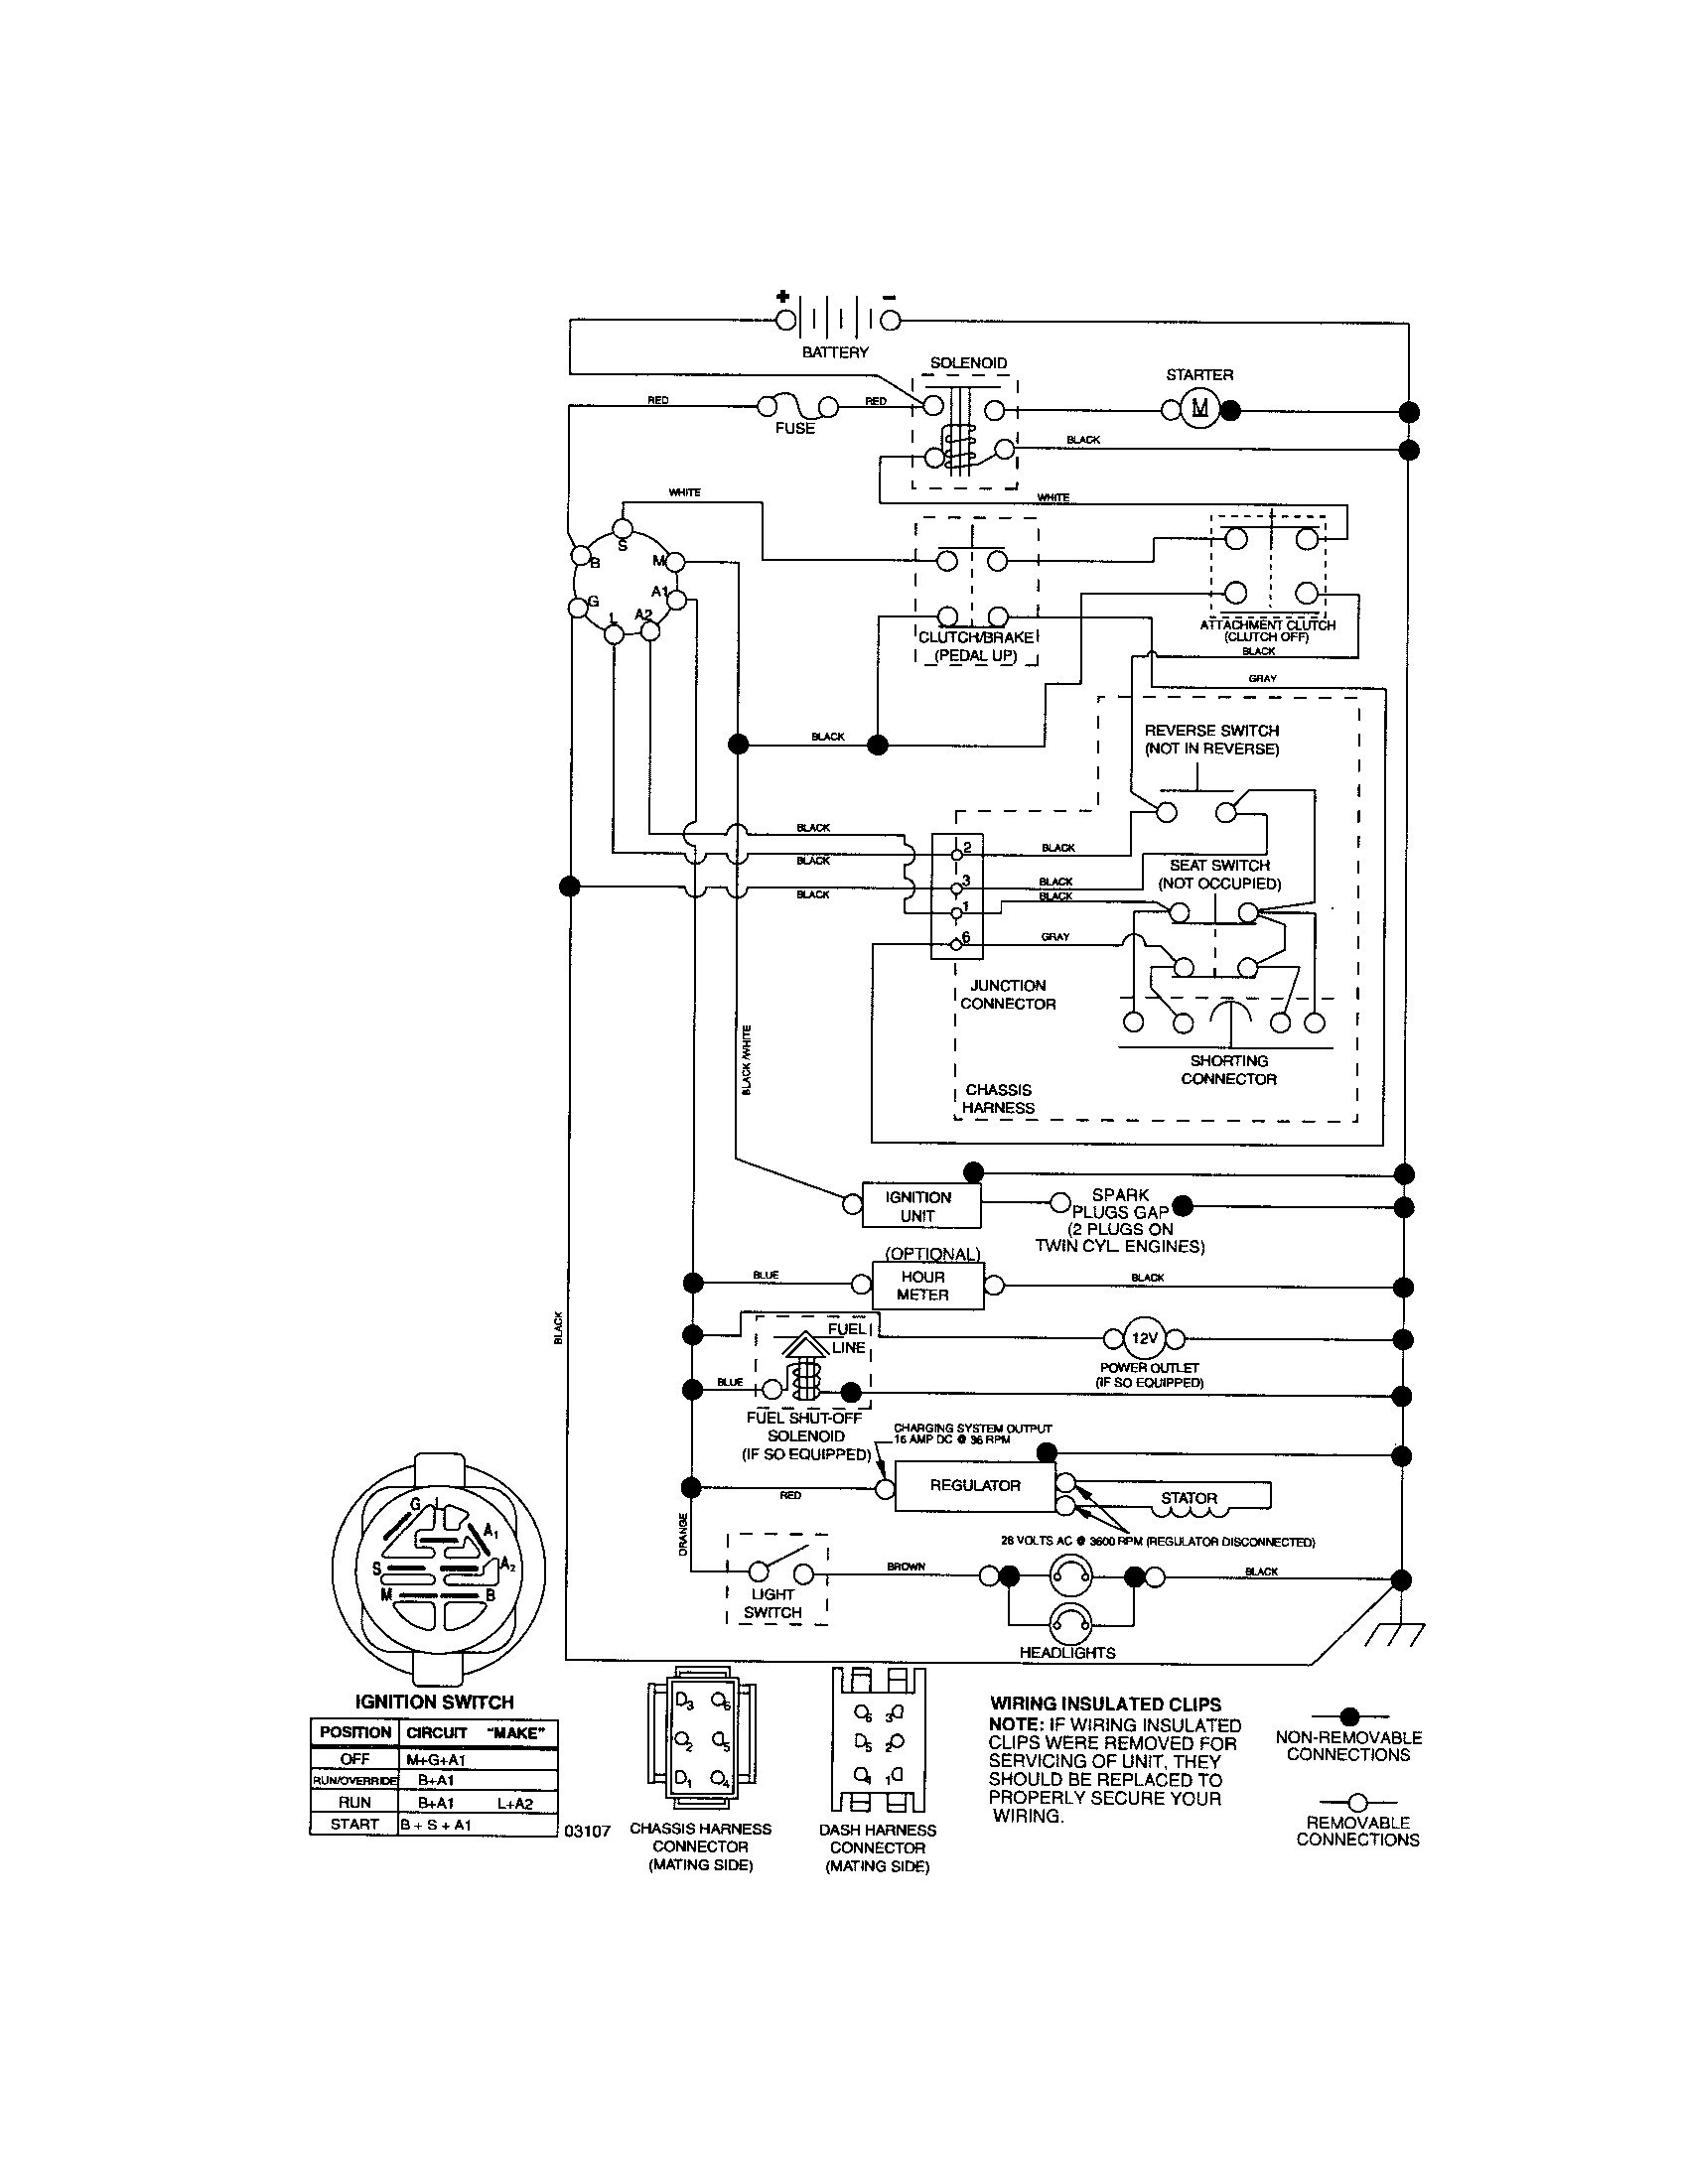 1968 Bolens Wiring Diagram Full Hd Version Wiring Diagram Schematic Ries Sgw09altligen De